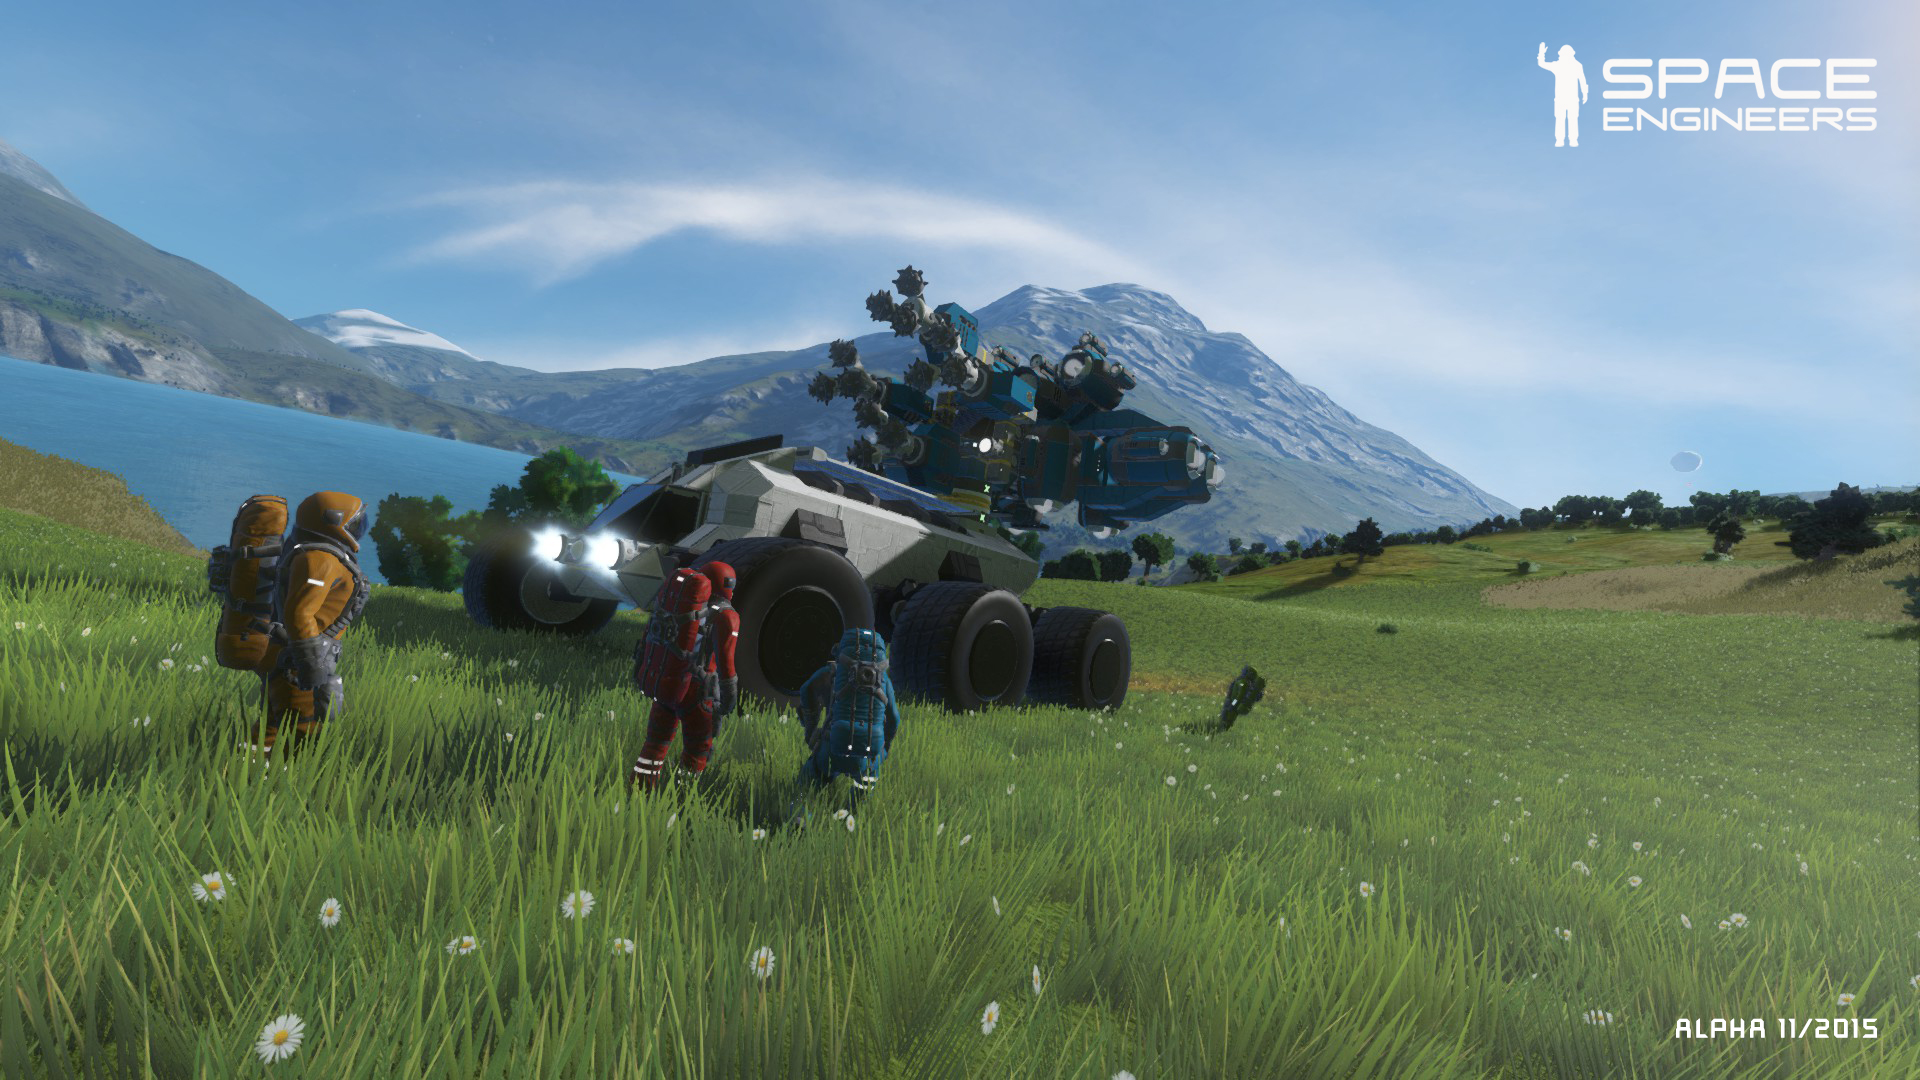 SPACE ENGINEERS STEAM Key  REGION FREE